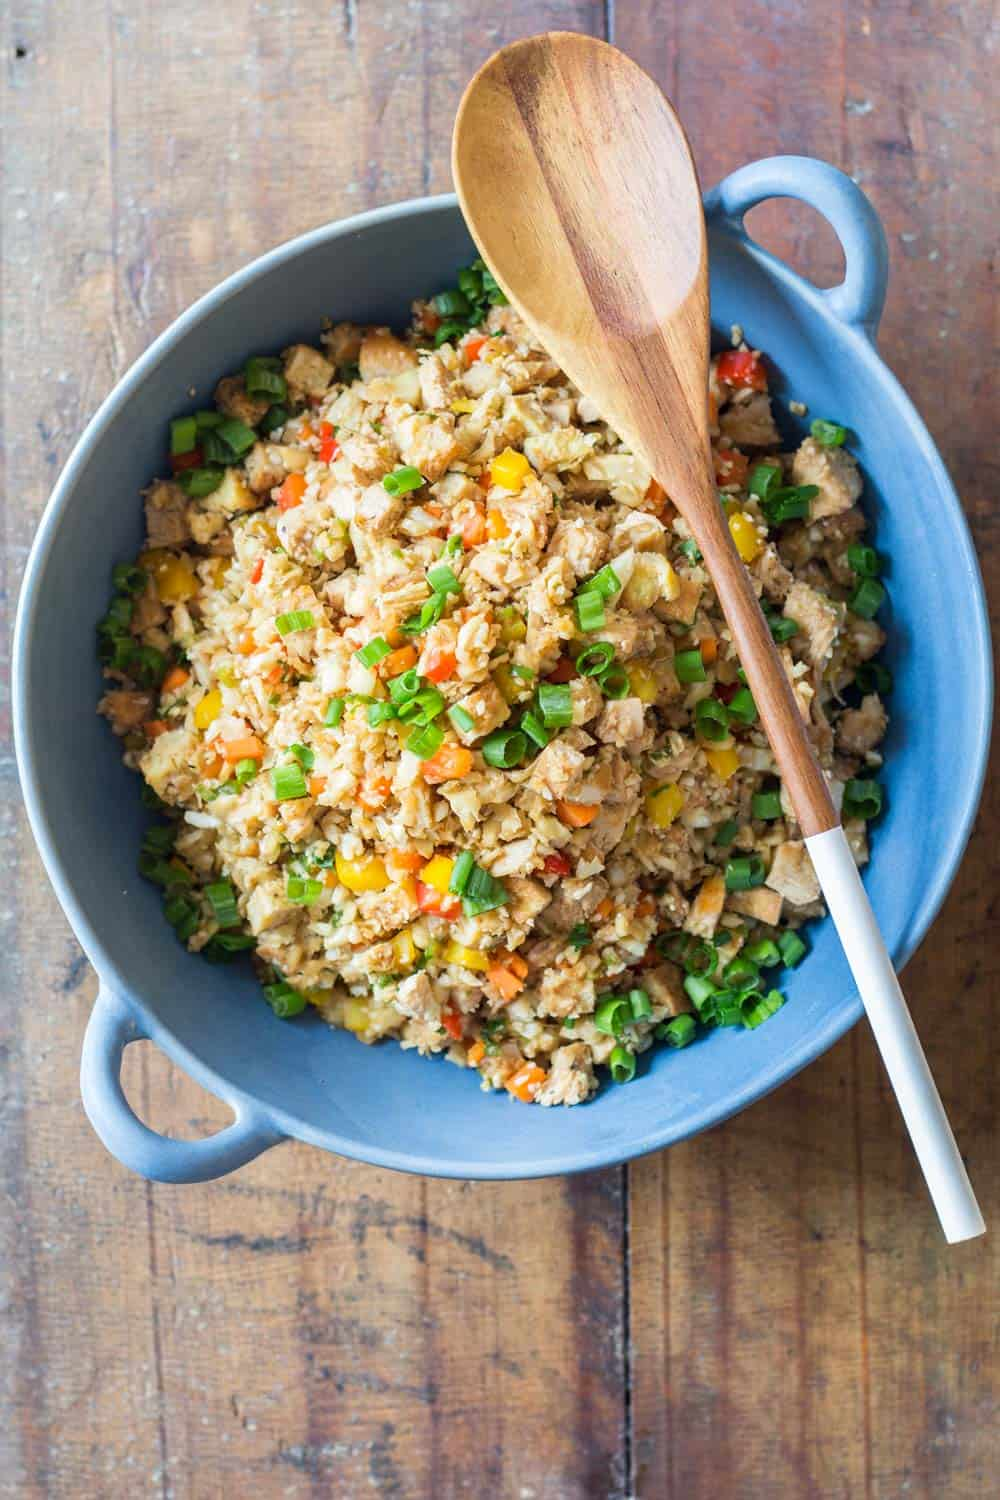 Top view of Cauliflower Fried Rice in a blue bowl with a wooden spoon.